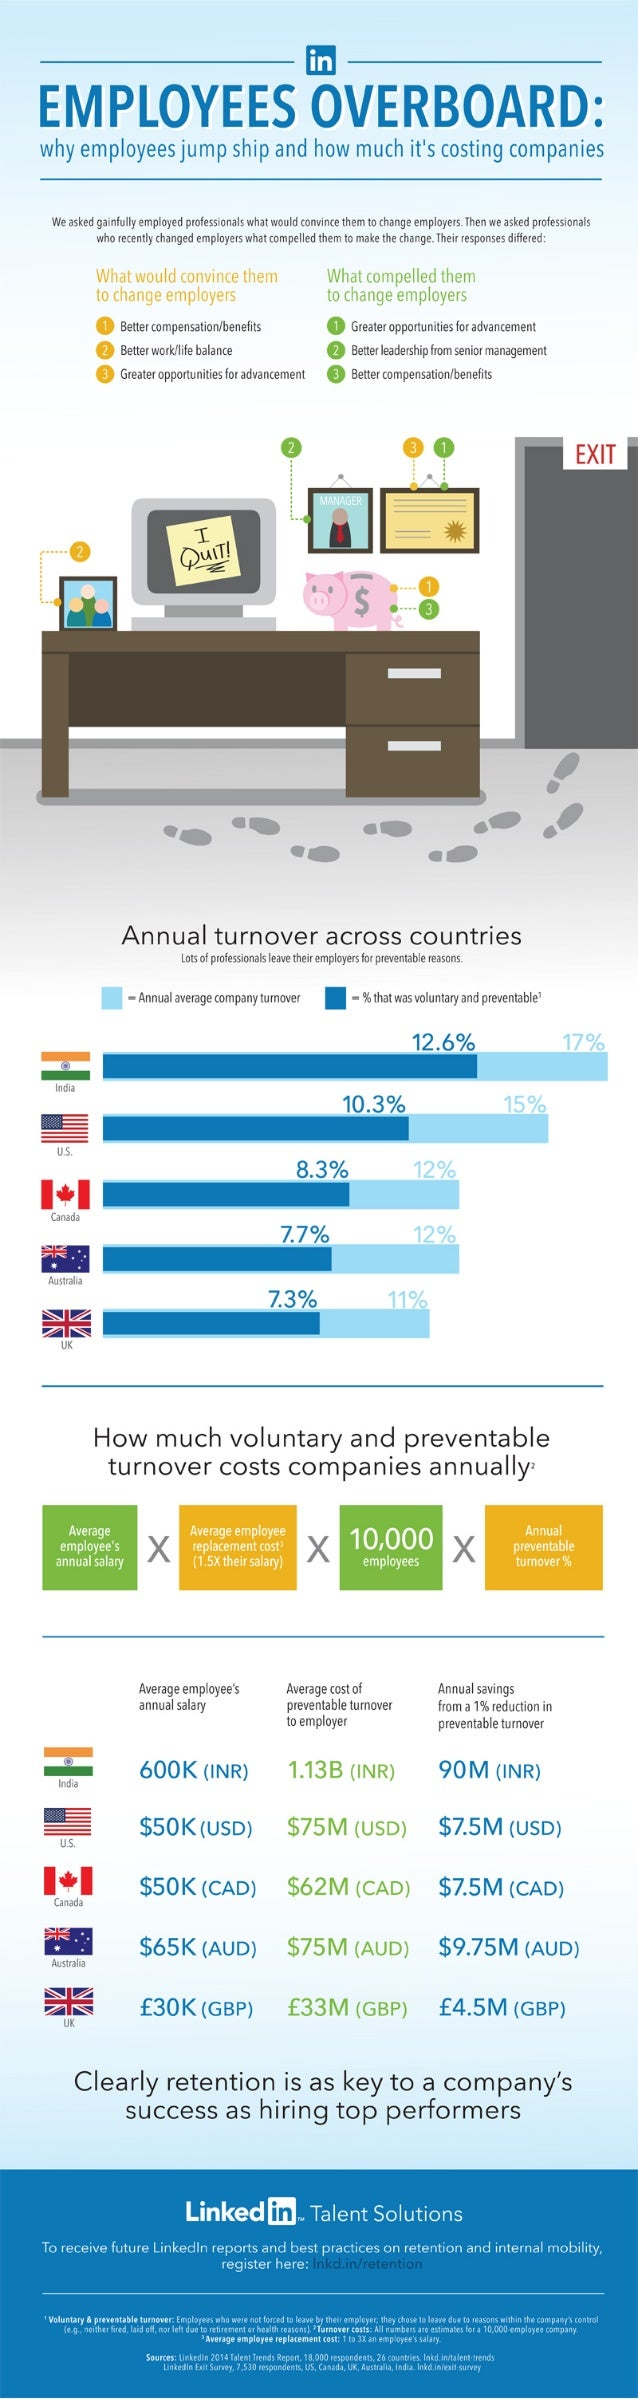 Why More Employees Are Considering Leaving Their Companies | INFOGRAPHIC